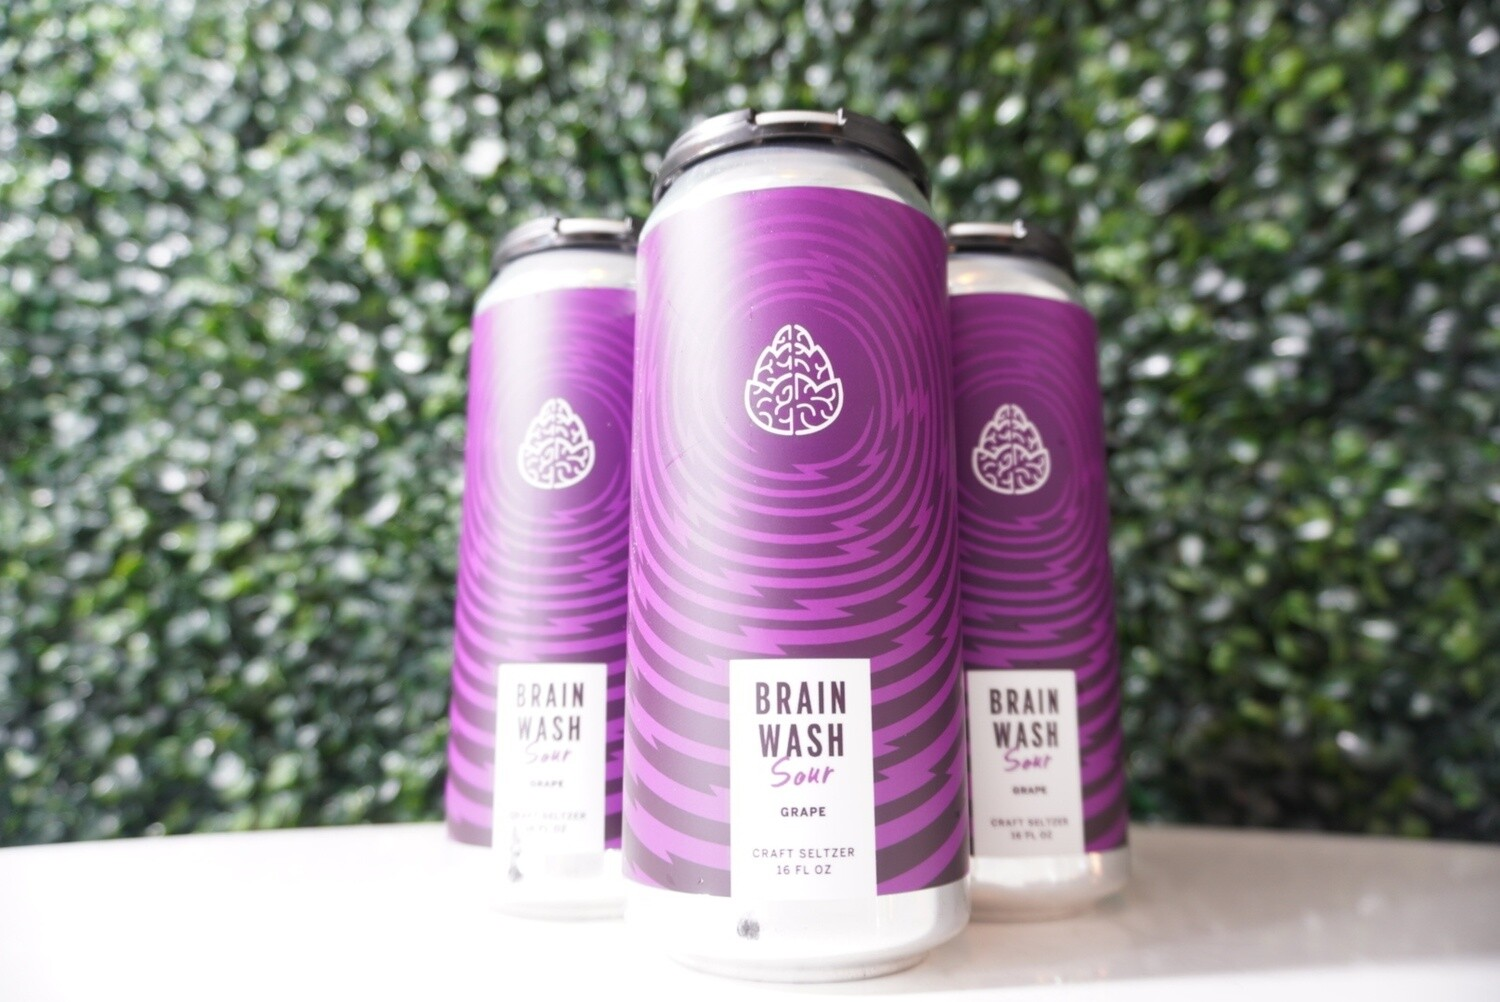 Cerebral - Brain Wash Sour Grape - Hard Seltzer - 4.8% ABV - 16oz Can